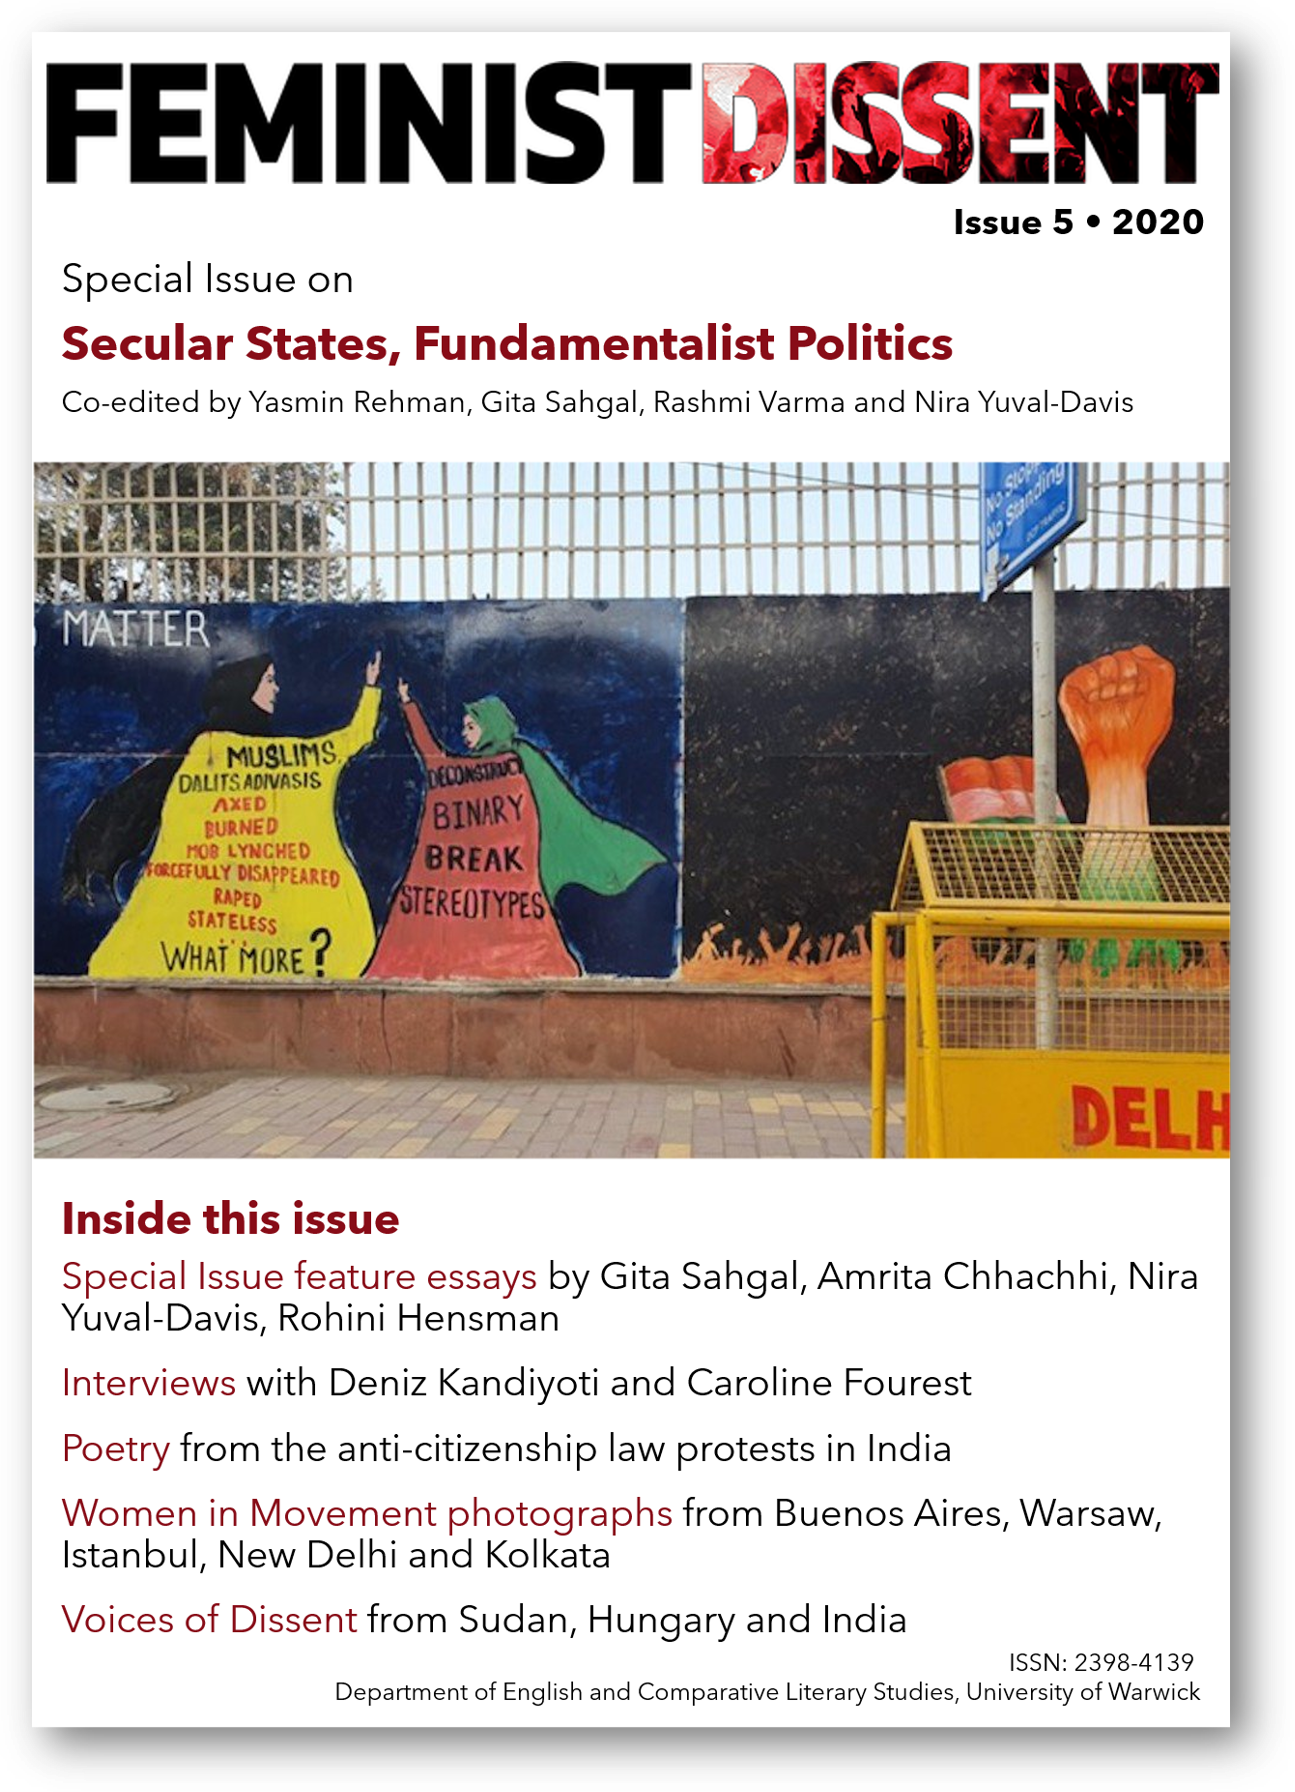 Feminist Dissent, Issue 5, 2020. Special Issue on Secular States, Fundamnetalist Politics, front cover. Image: Murals at Shaheen Bagh by Shirin Rai.